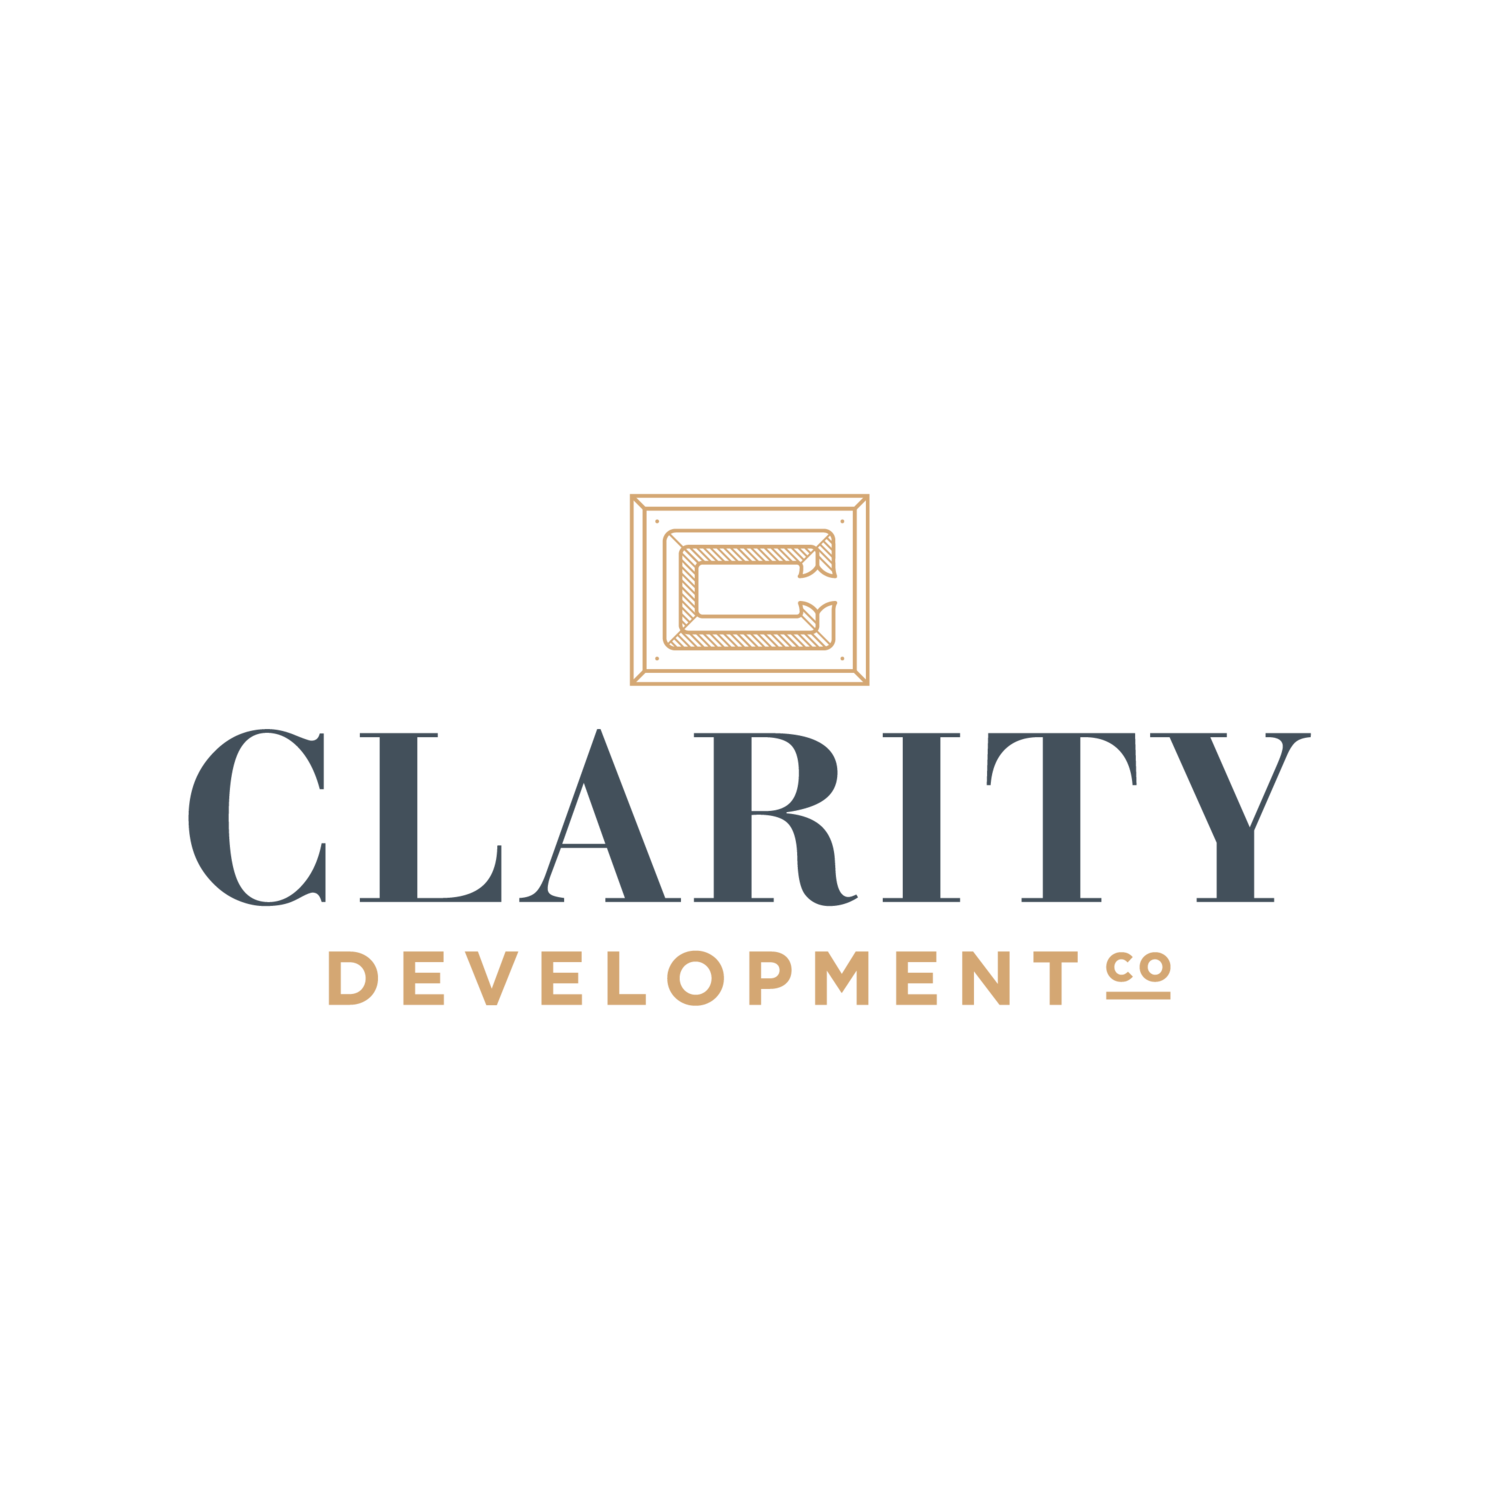 Clarity Development Company